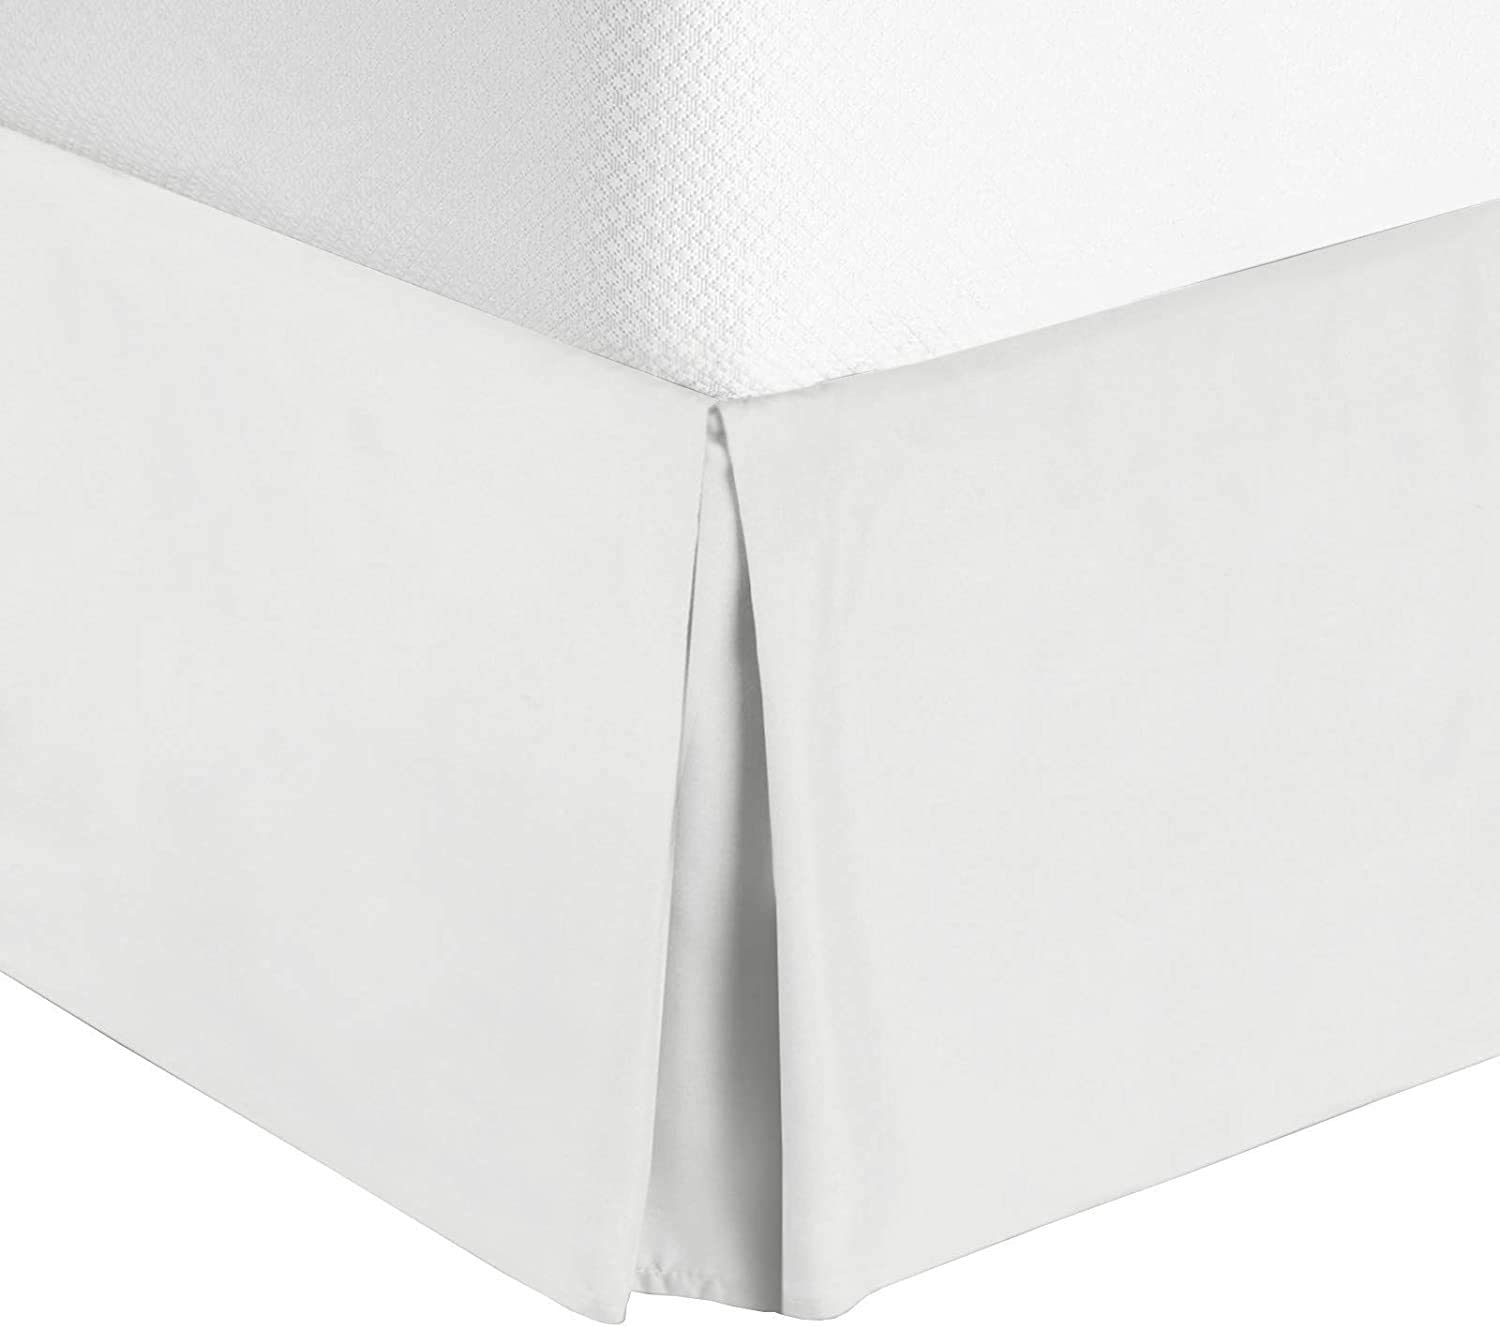 Cruiz Linen Italian Finish Egyptian Cotton Tailored Split Corner Bed Skirt with 16-inch Drop Length - Queen Size (60 x 80) Color White (Solid Style) Made from 550 Thread Count